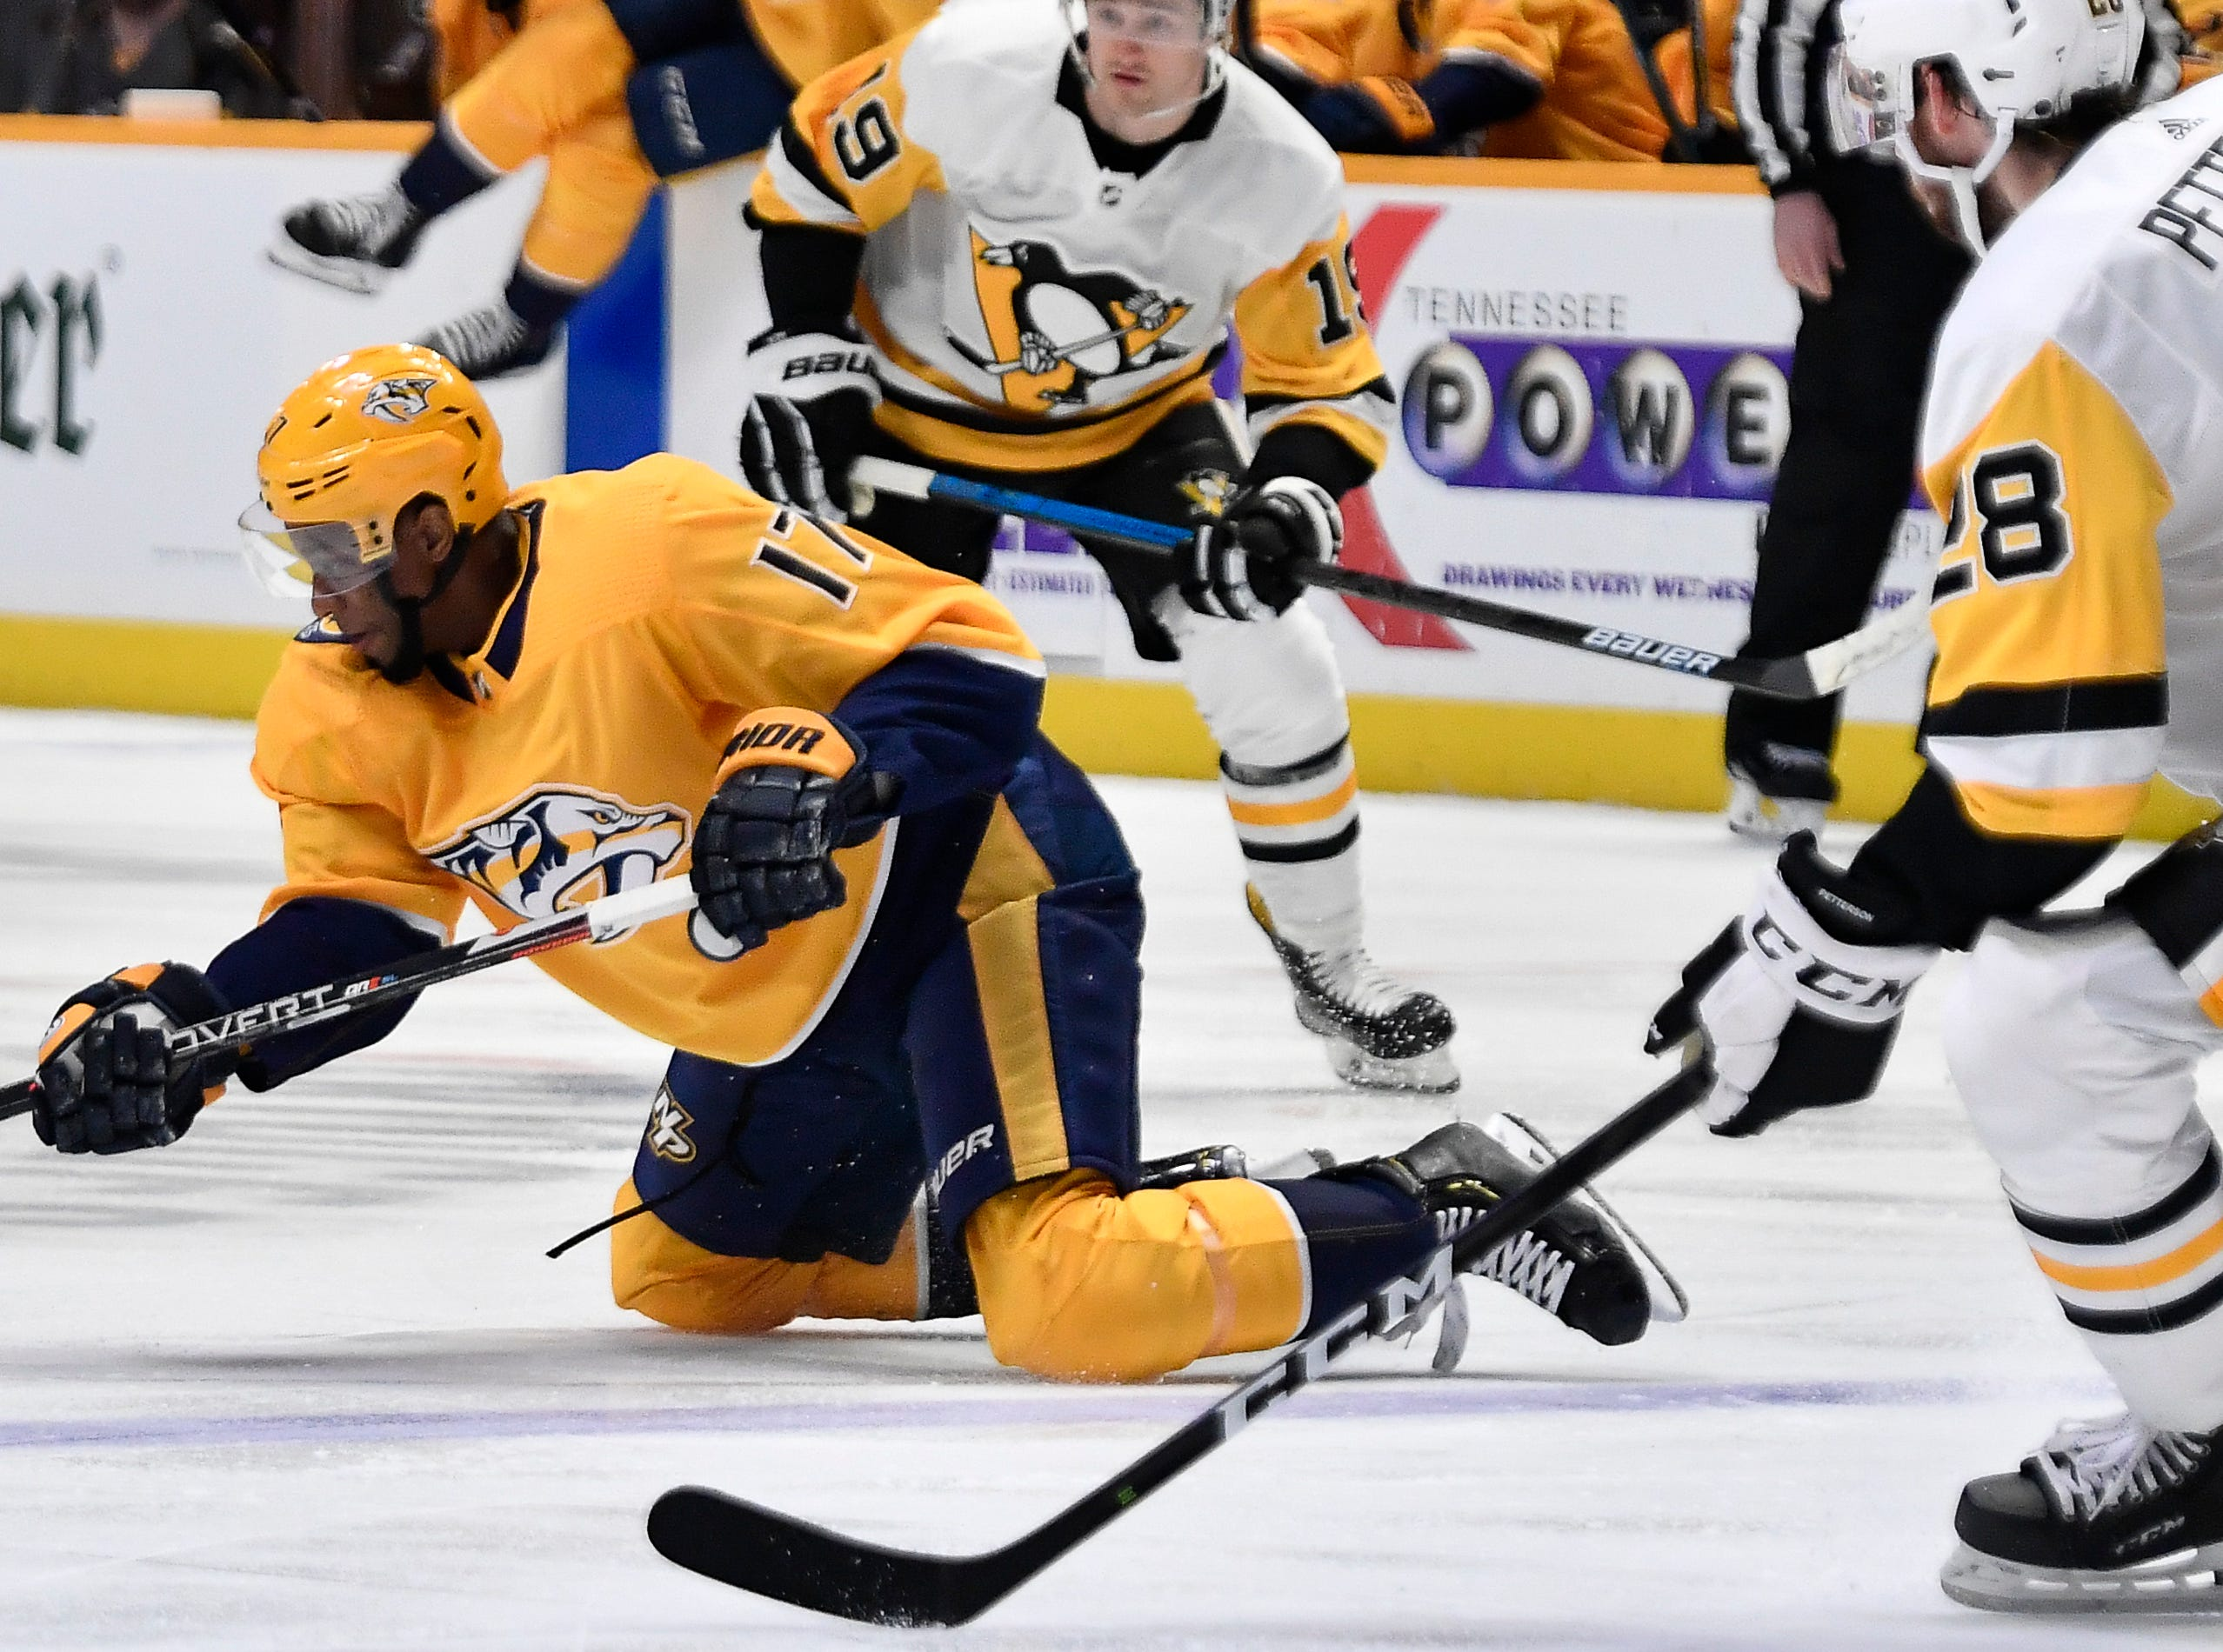 Predators right wing Wayne Simmonds (17) tries to shoot the puck past Penguins defenseman Marcus Pettersson (28) during the first period at Bridgestone Arena Thursday, March 21, 2019 in Nashville, Tenn.